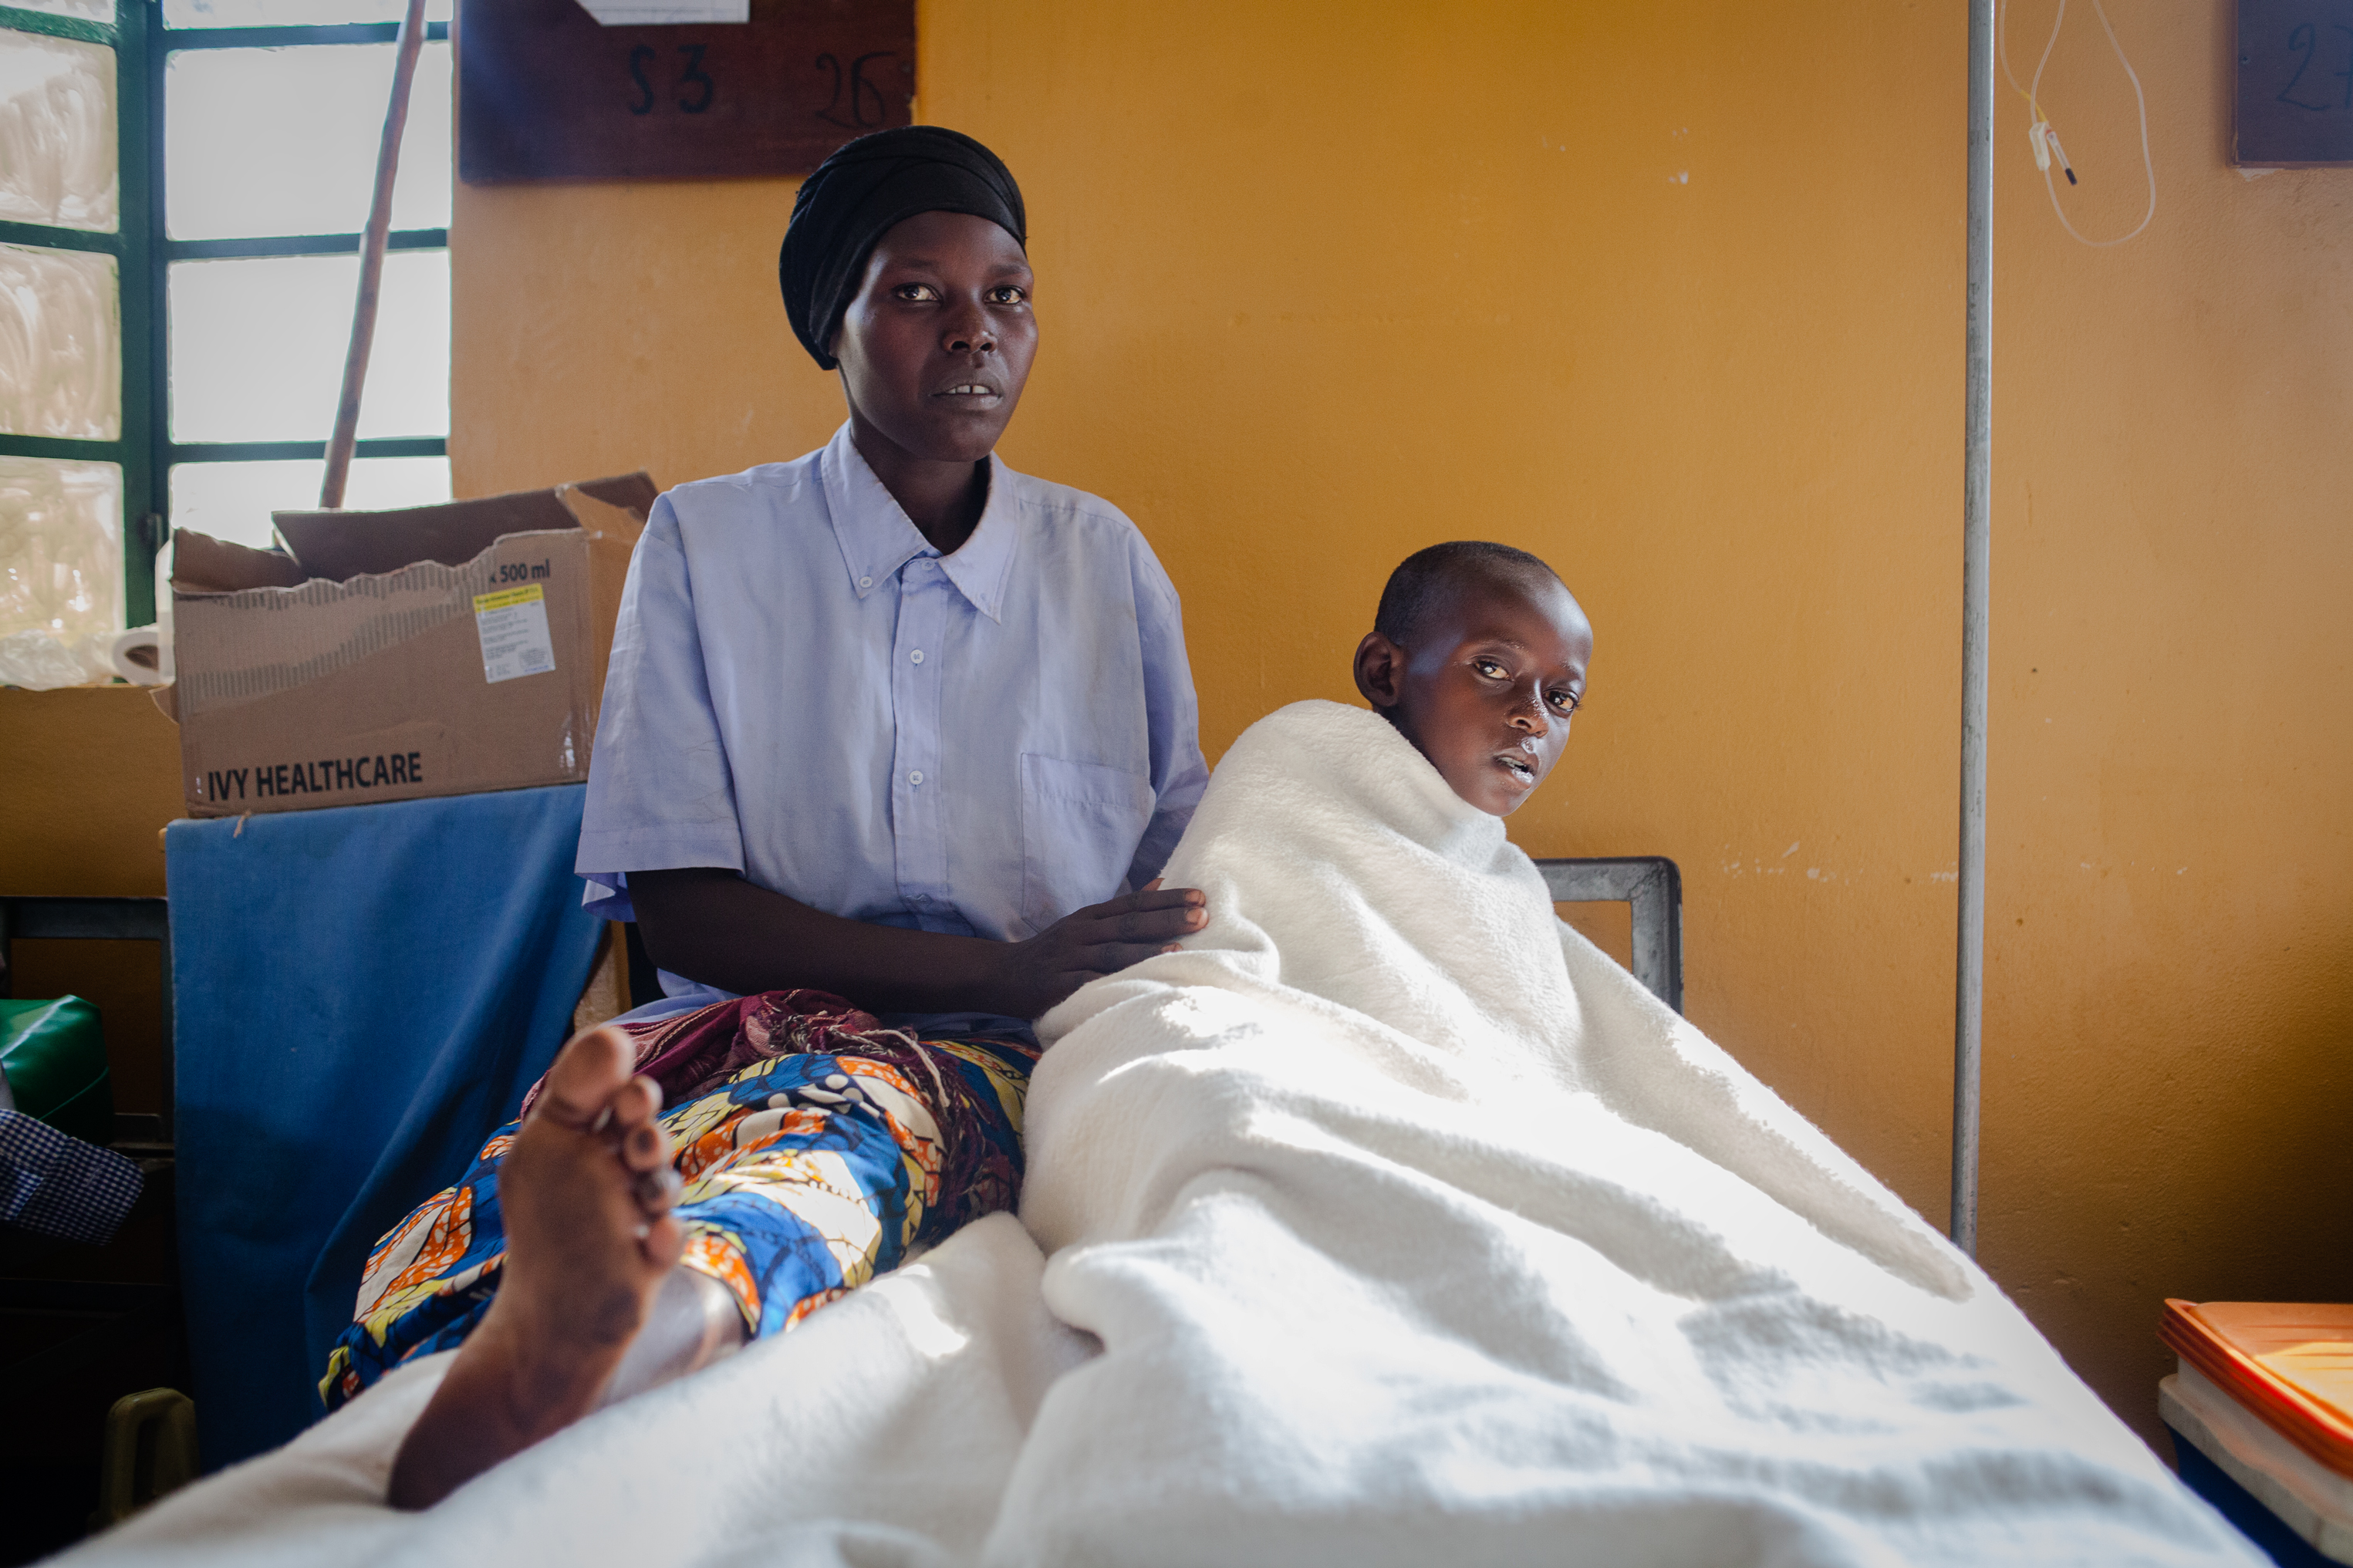 Donata Mubandakazi with her 10 year-old son Jean following surgery for an unidentified infection on his leg. He was given plasma from a Zipline drone.